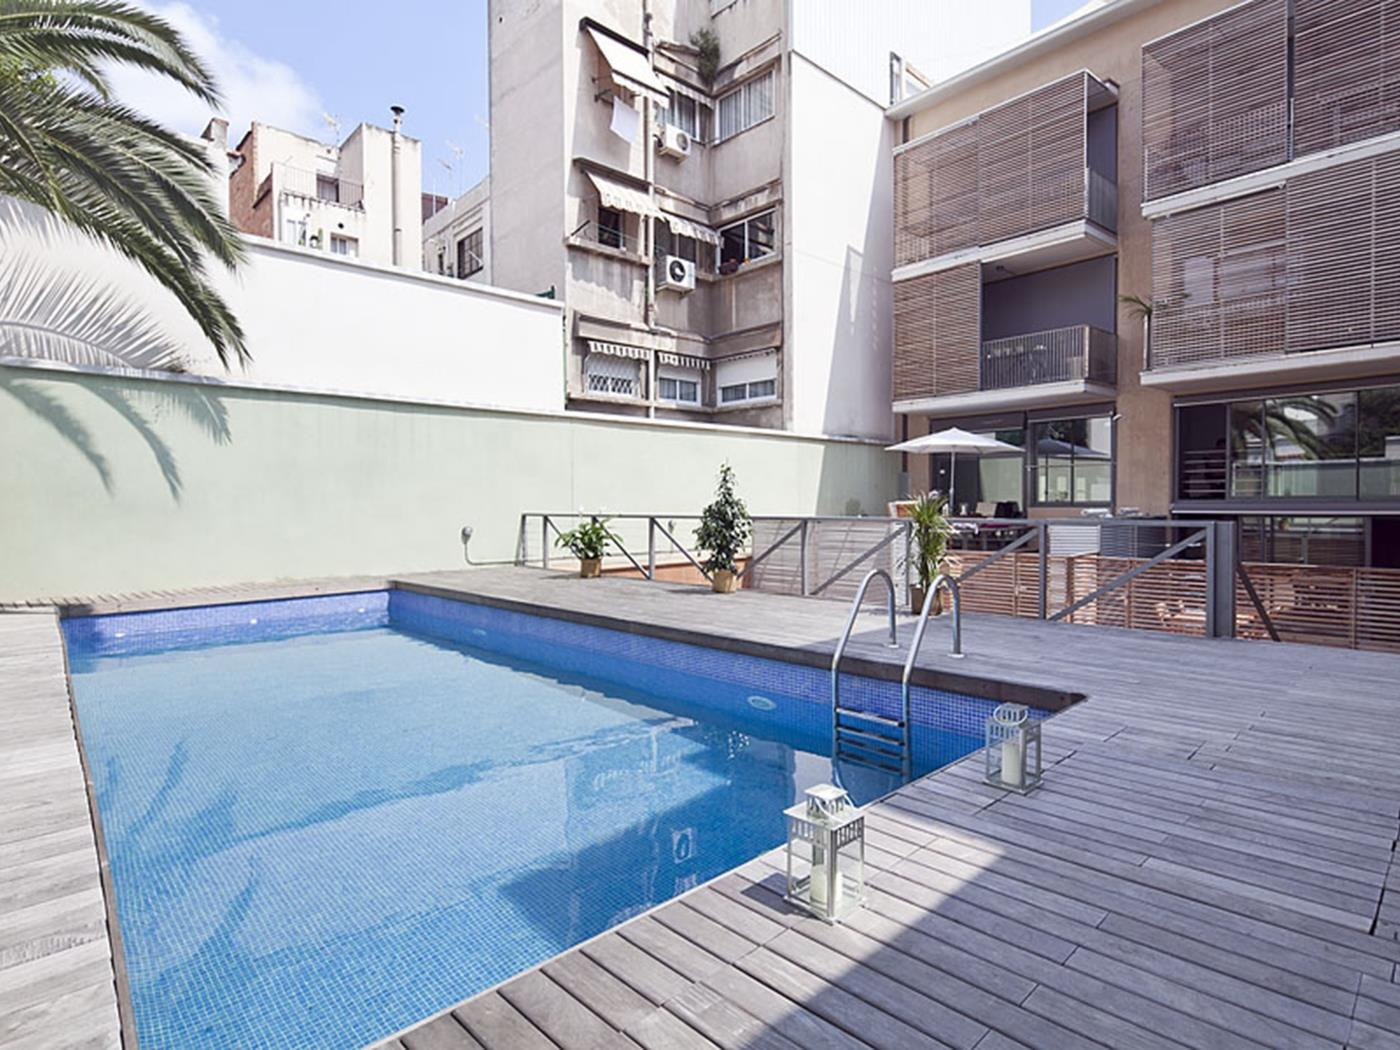 Gracia Penthouse with pool II - My Space Barcelona Aпартаменты